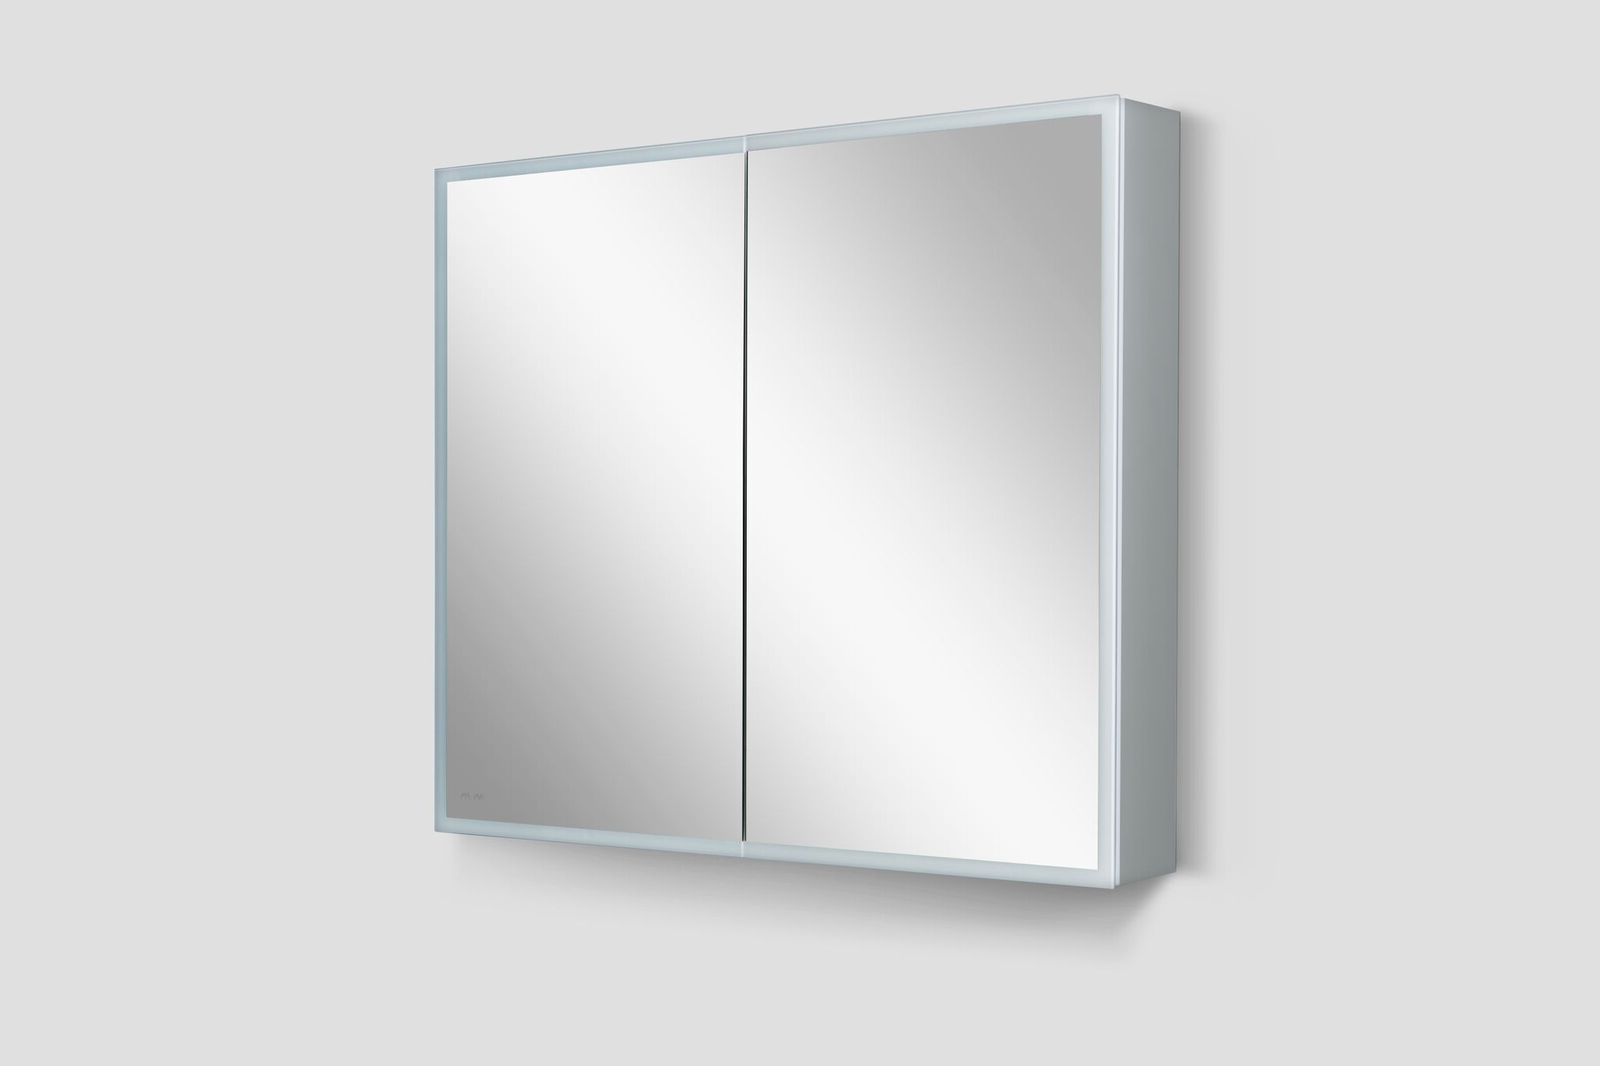 M70AMCX0801 Mirror cabinet with lighting, 80 cm